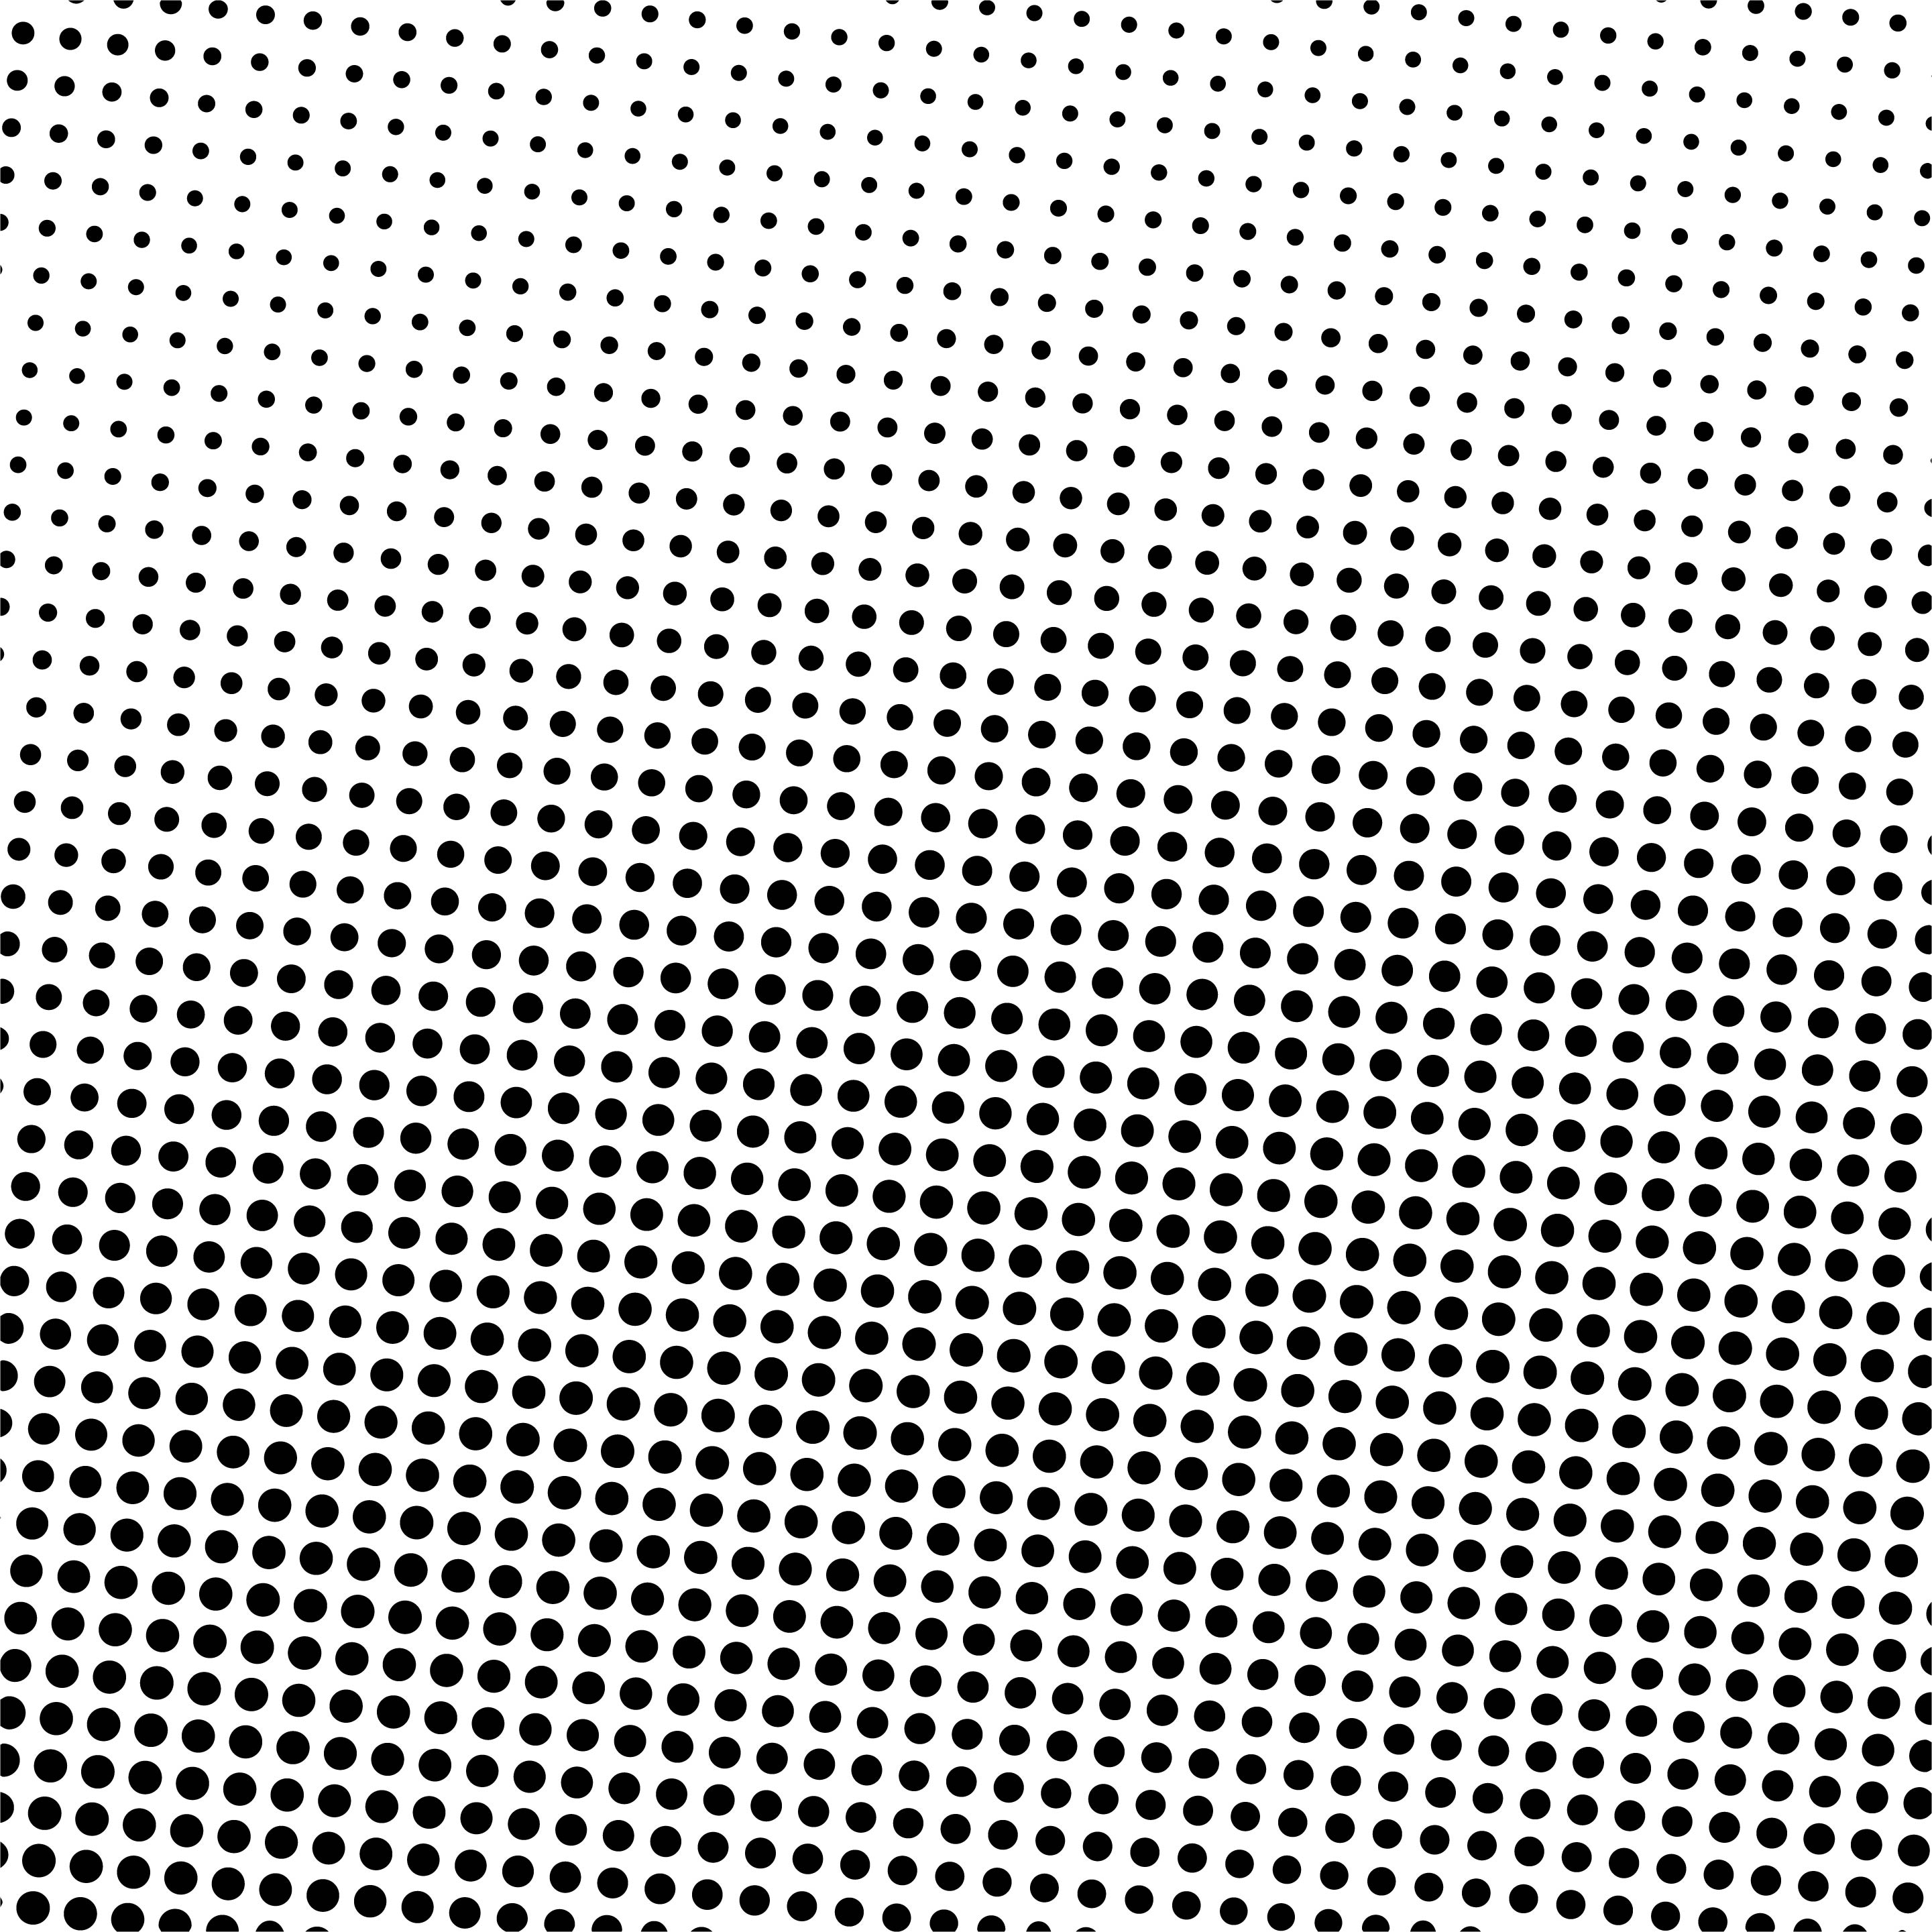 Abstract Comic Dotted Background